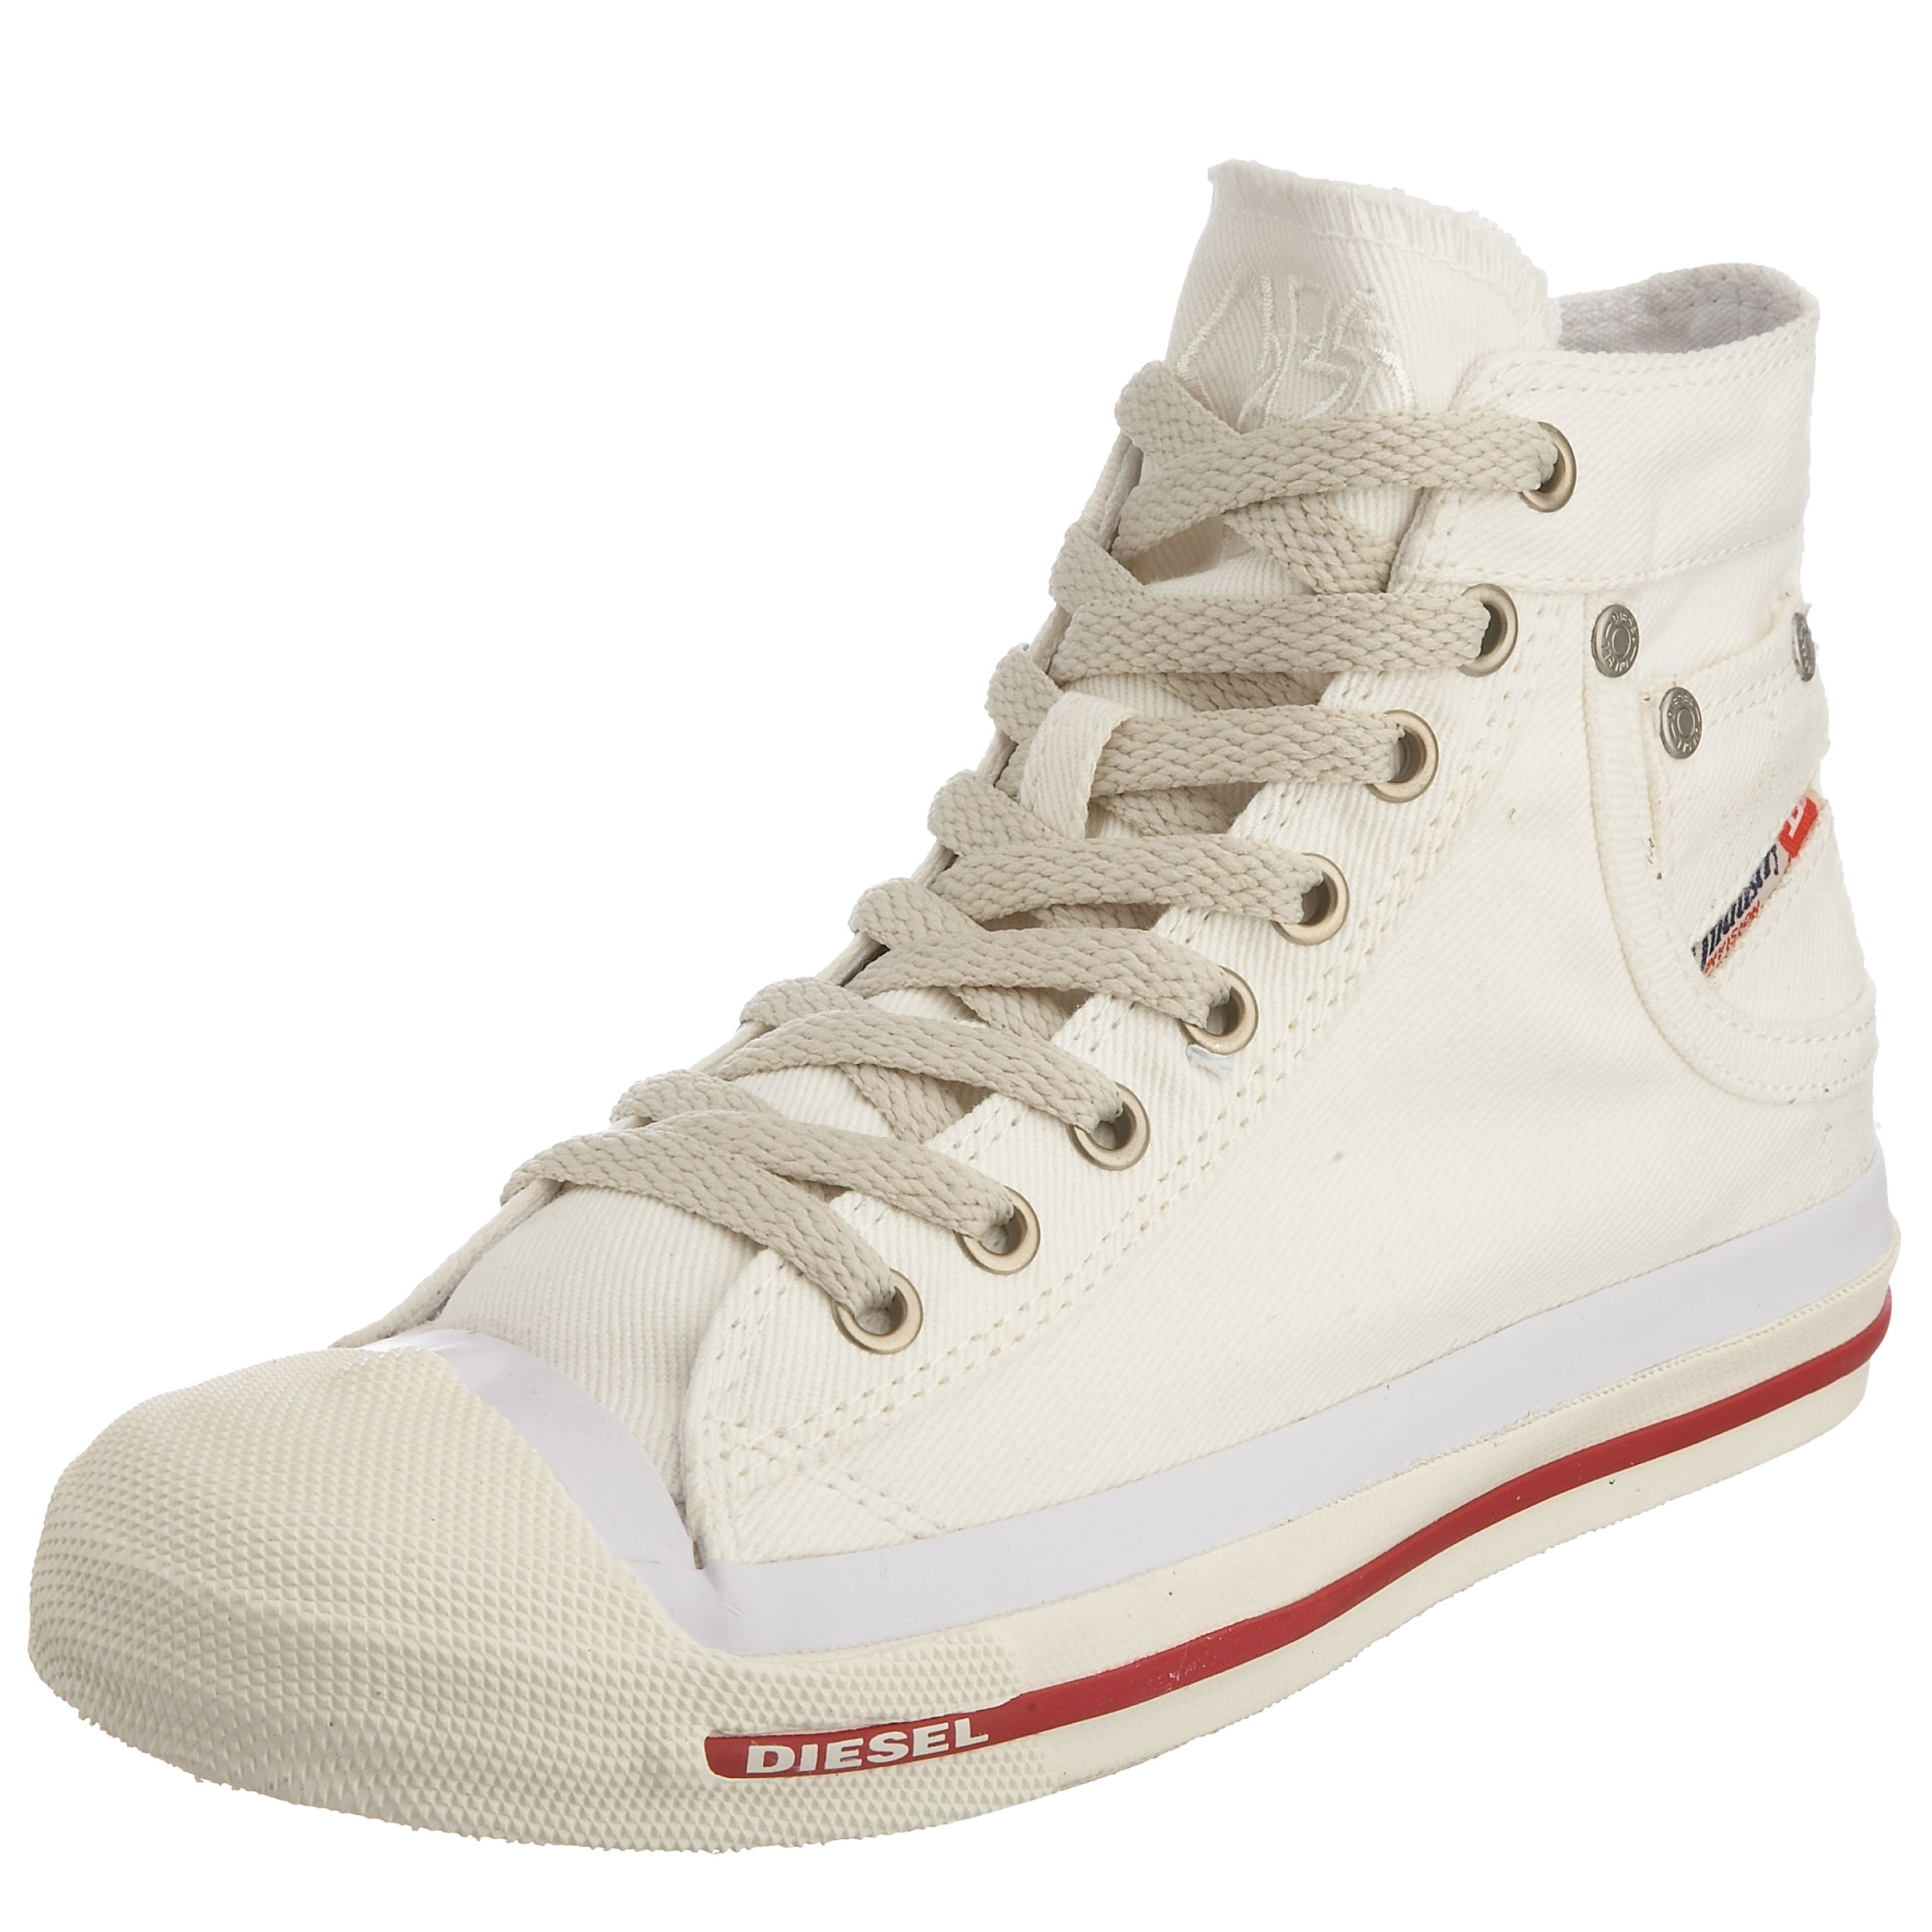 Diesel Magnete Exposure Mid, Women's Hi-Top Sneaker, White (T1002 T1002), 4 UK (37 EU)